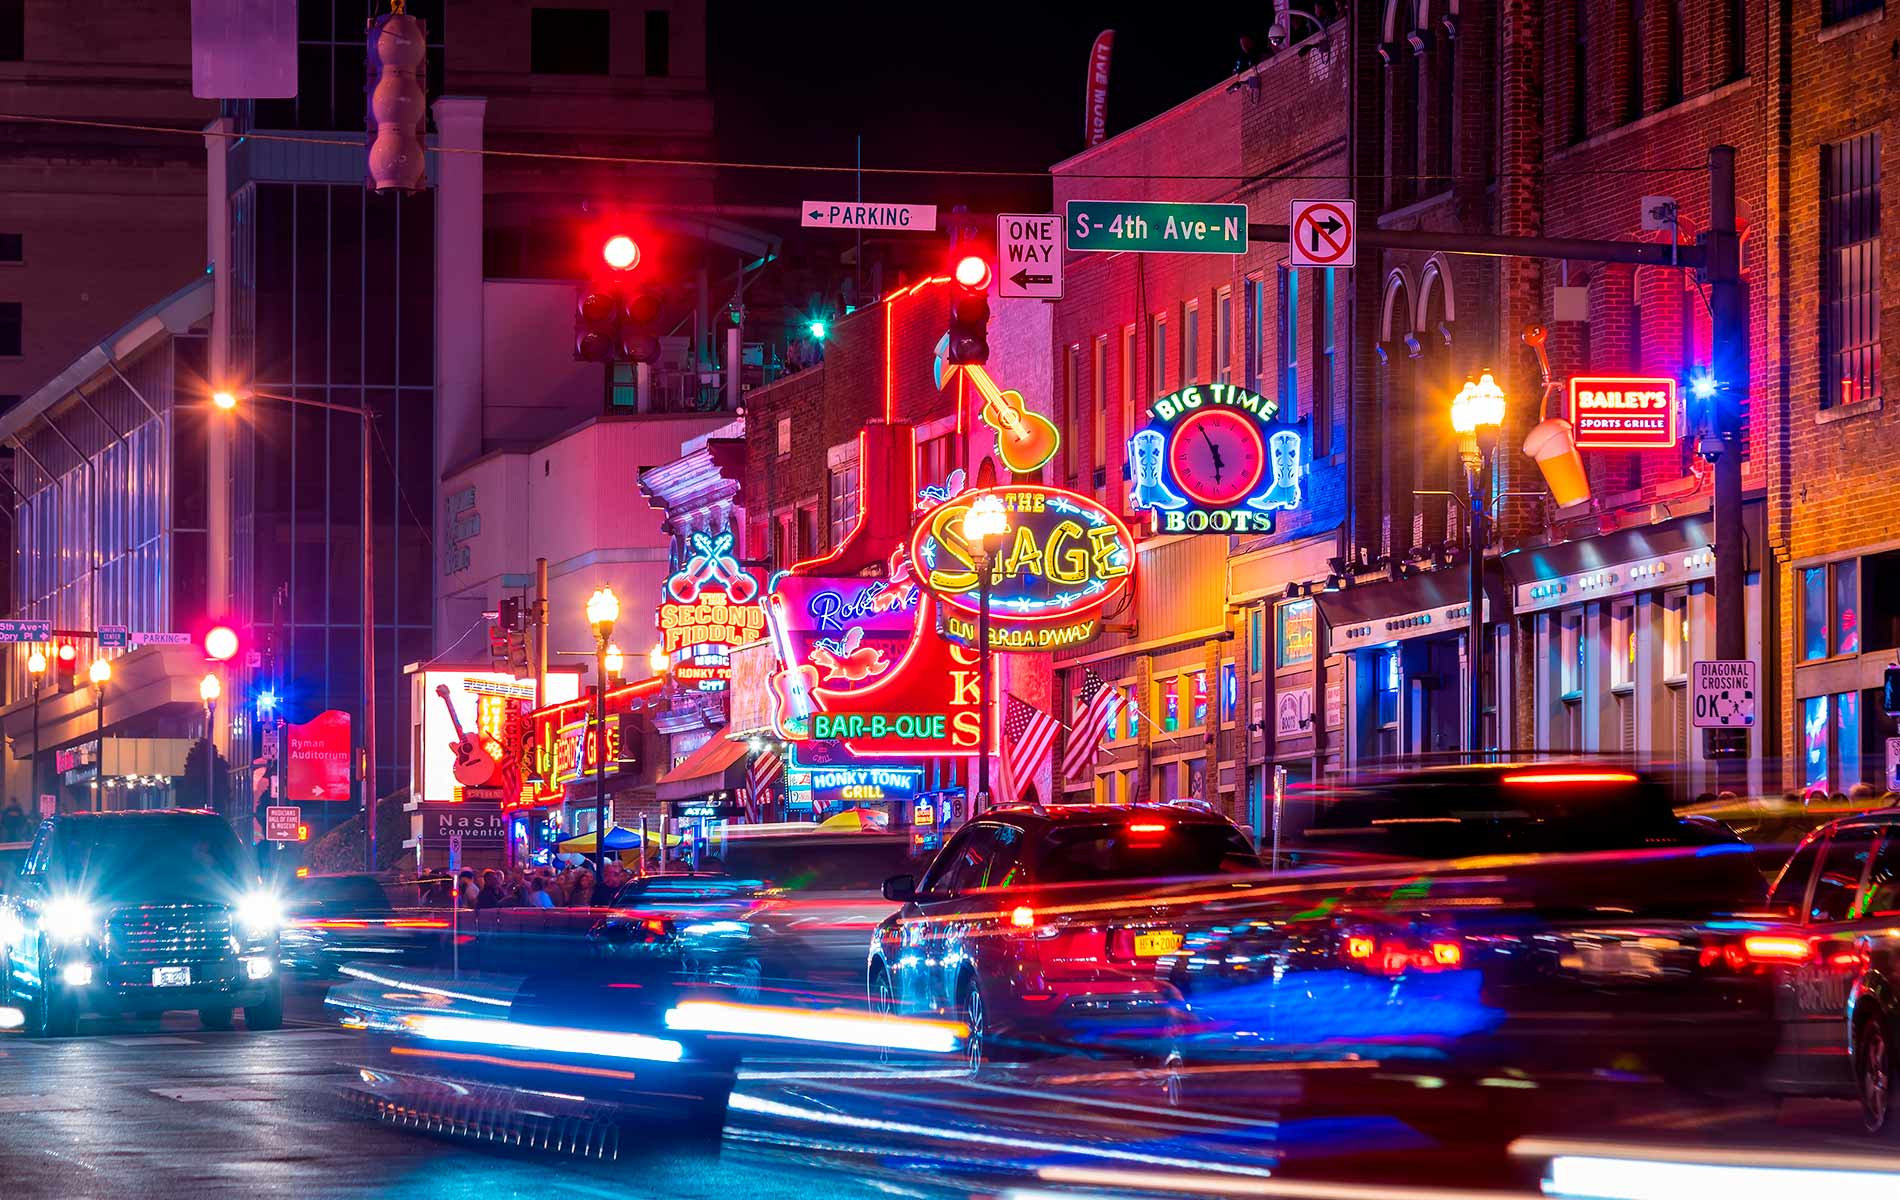 City night life in Nashville Tennessee Nashville is where it's at hot spot travel feature